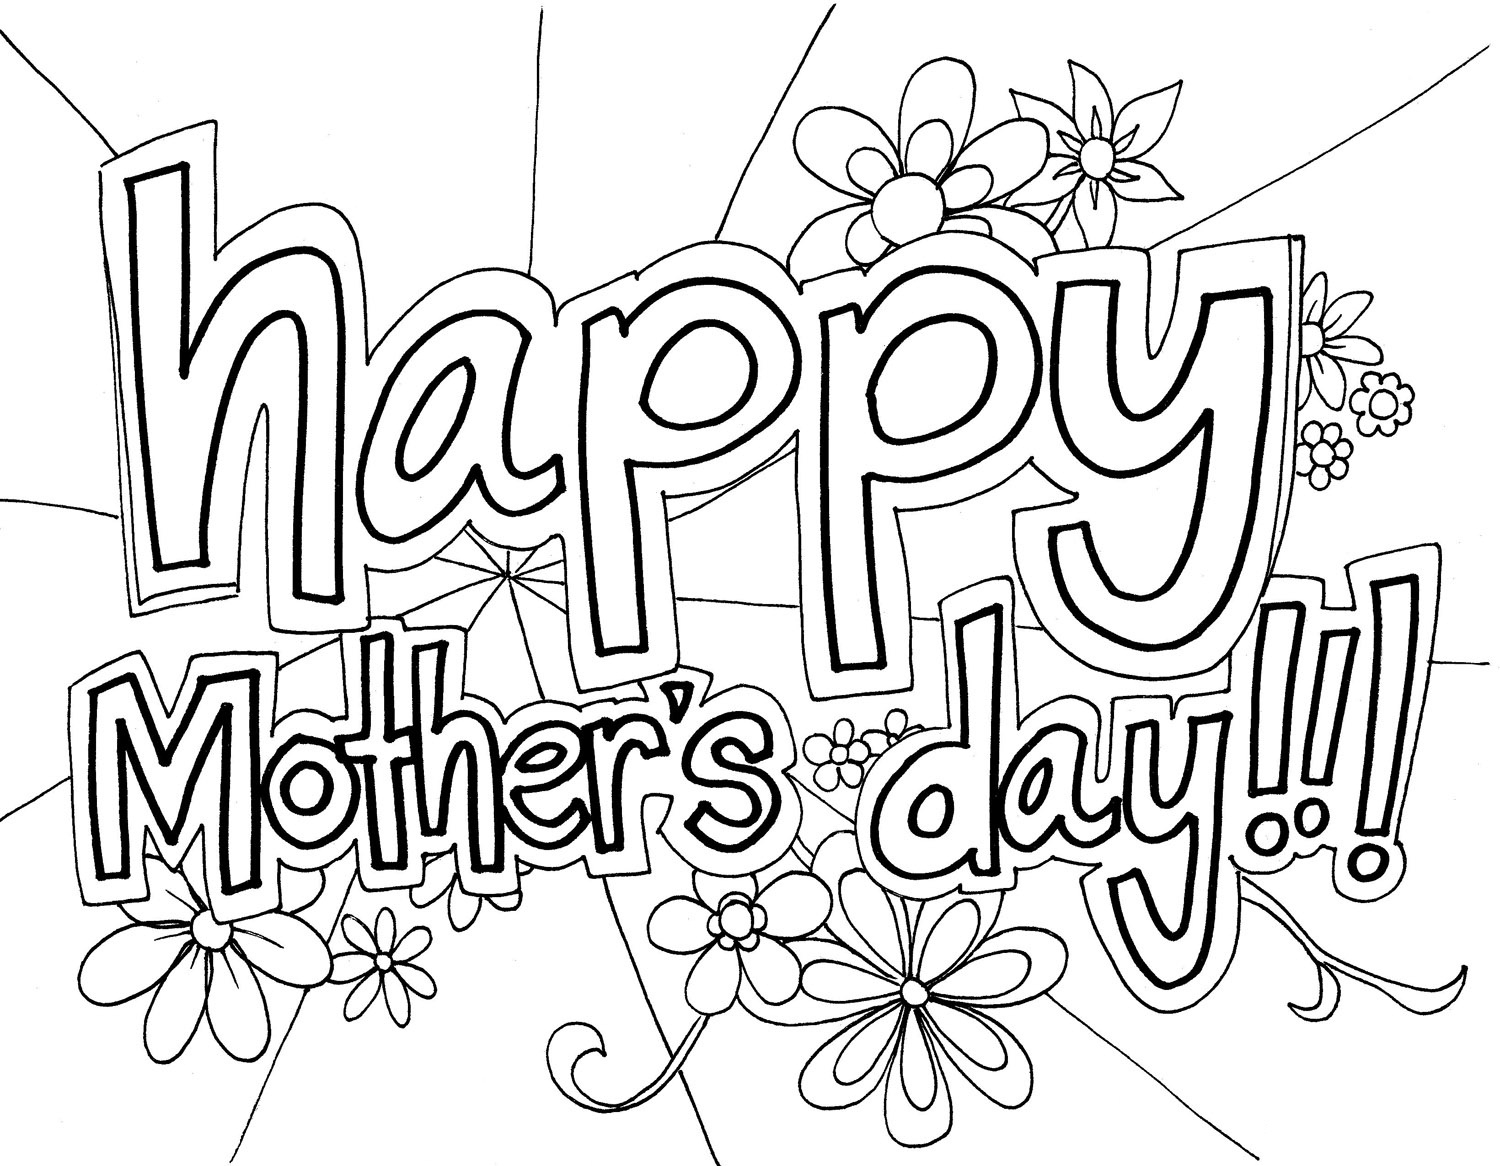 Free Printable Mothers Day Coloring Pages - Coloring Pages For Kids - Free Printable Mothers Day Coloring Pages